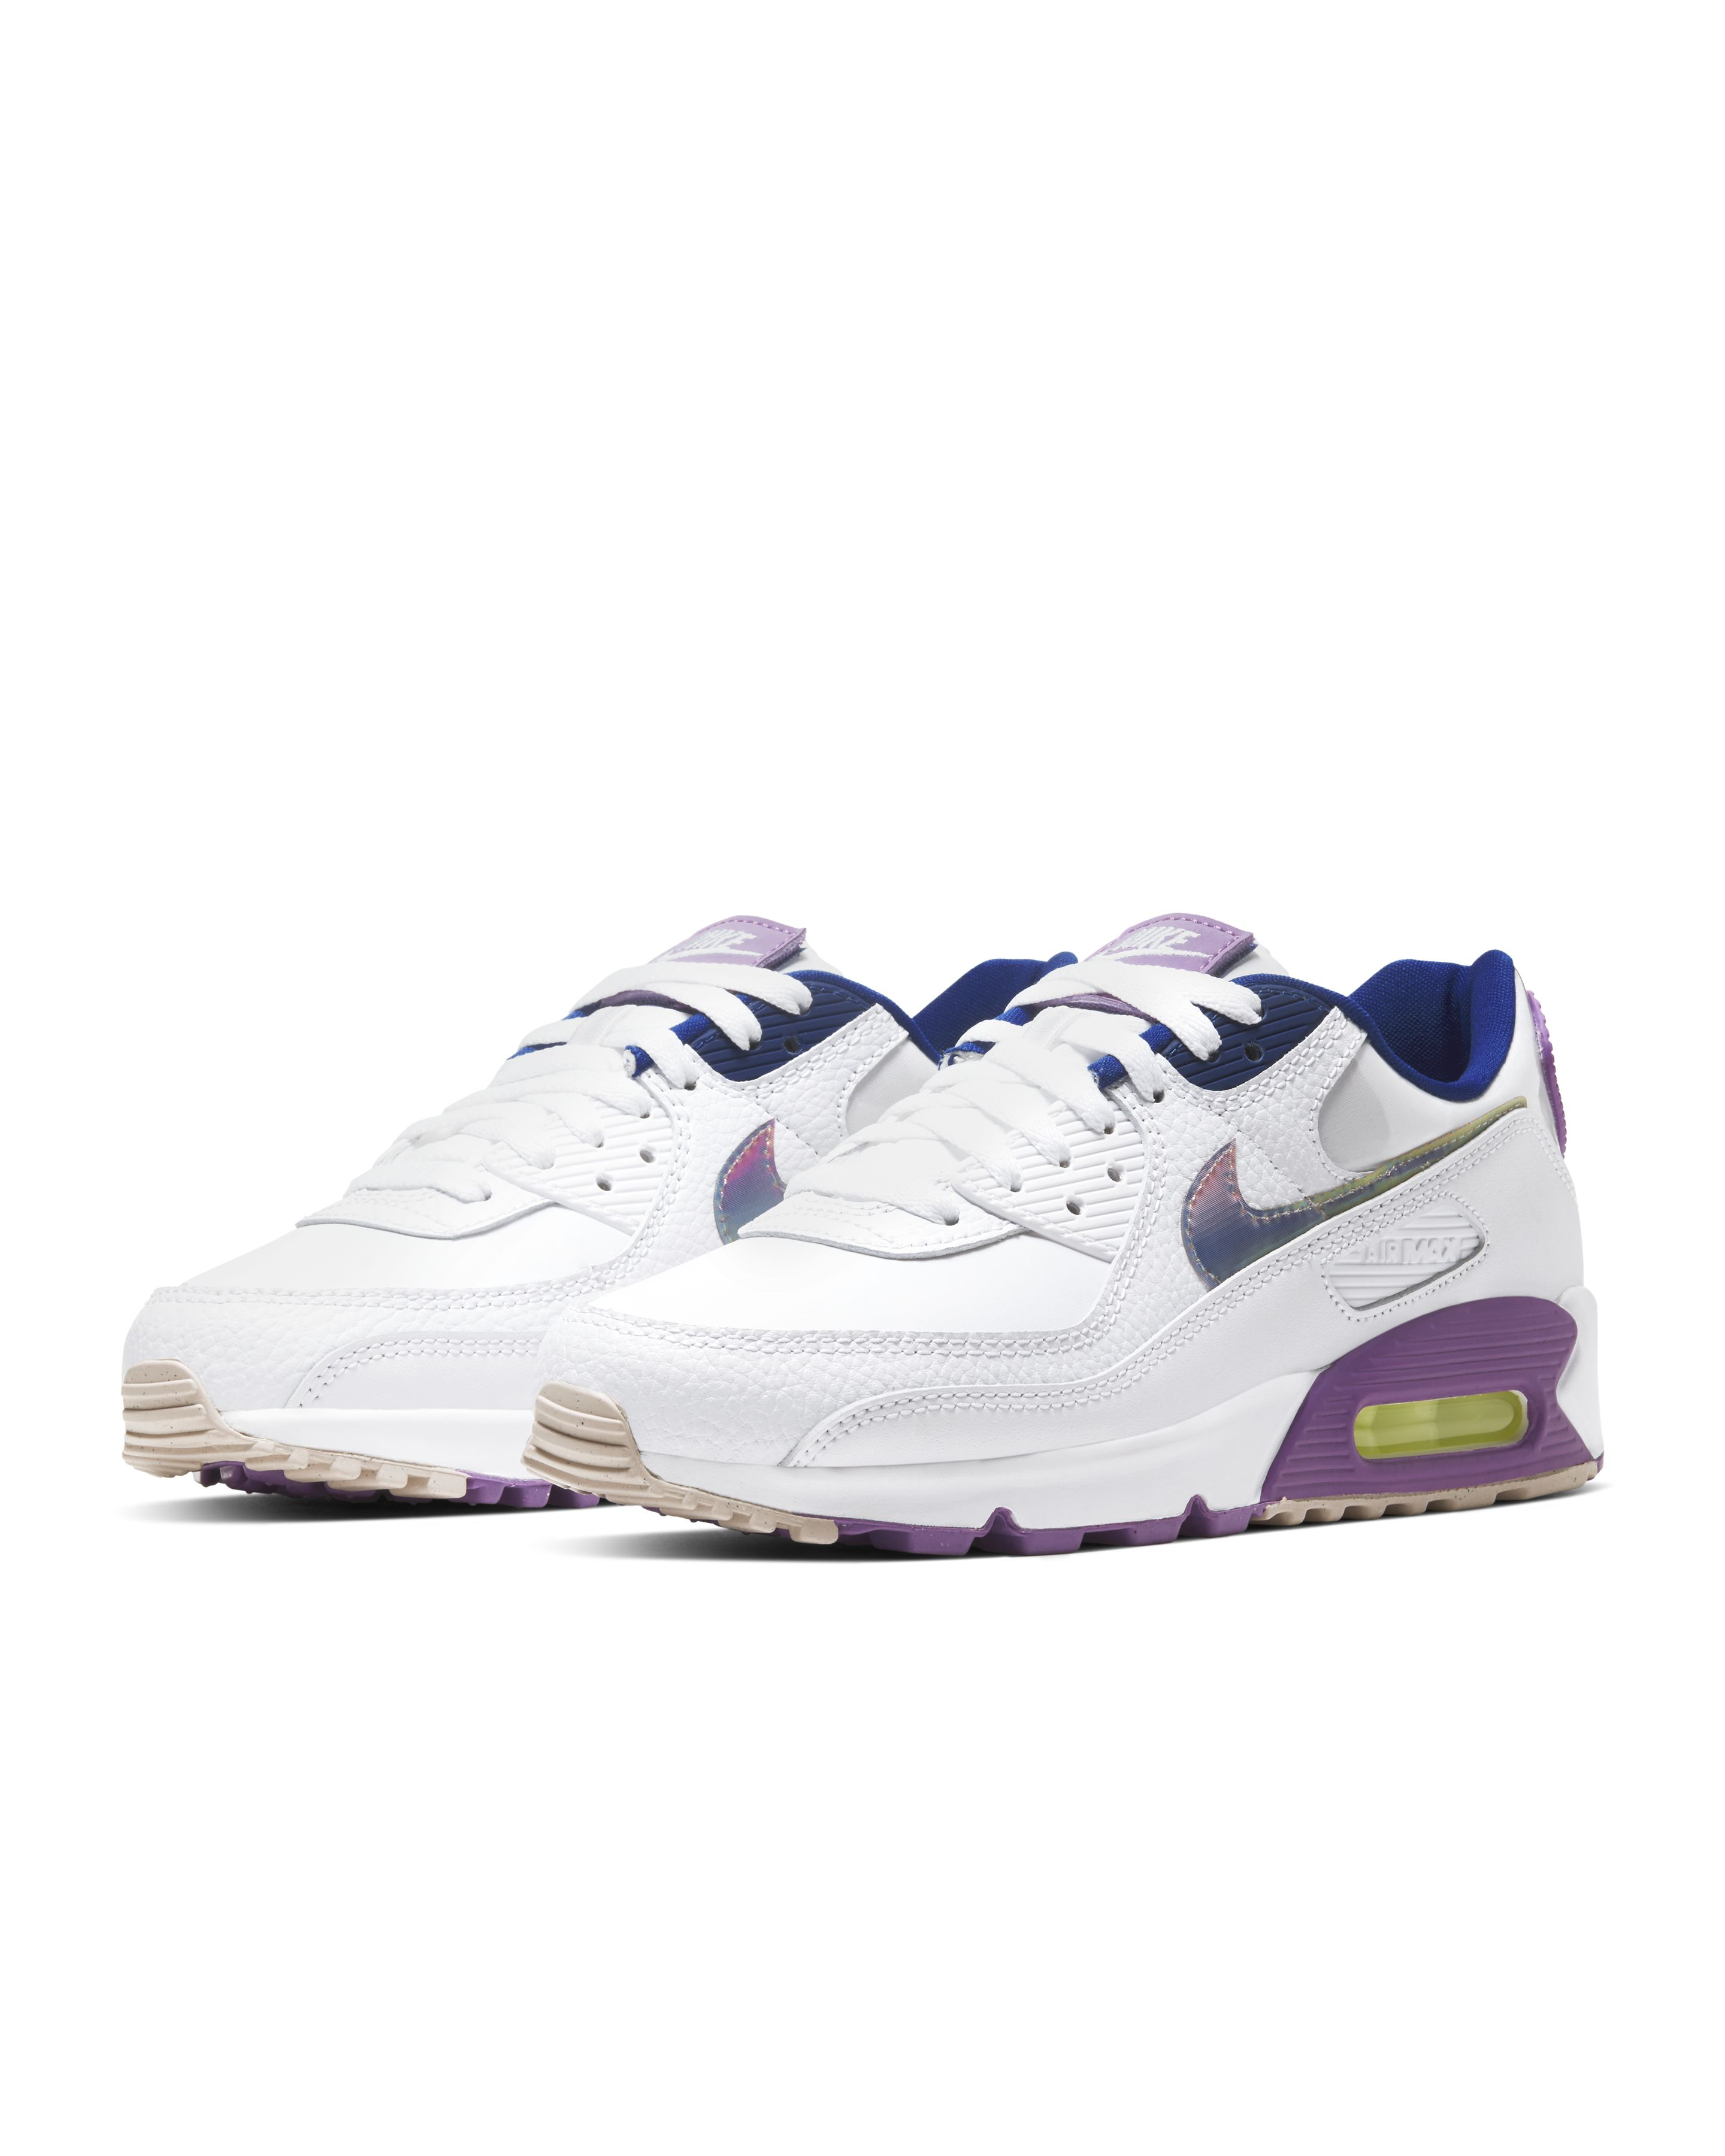 Nike Air Max 90 SE White/Purple Nebula/Barely Volt/Multi-Colour